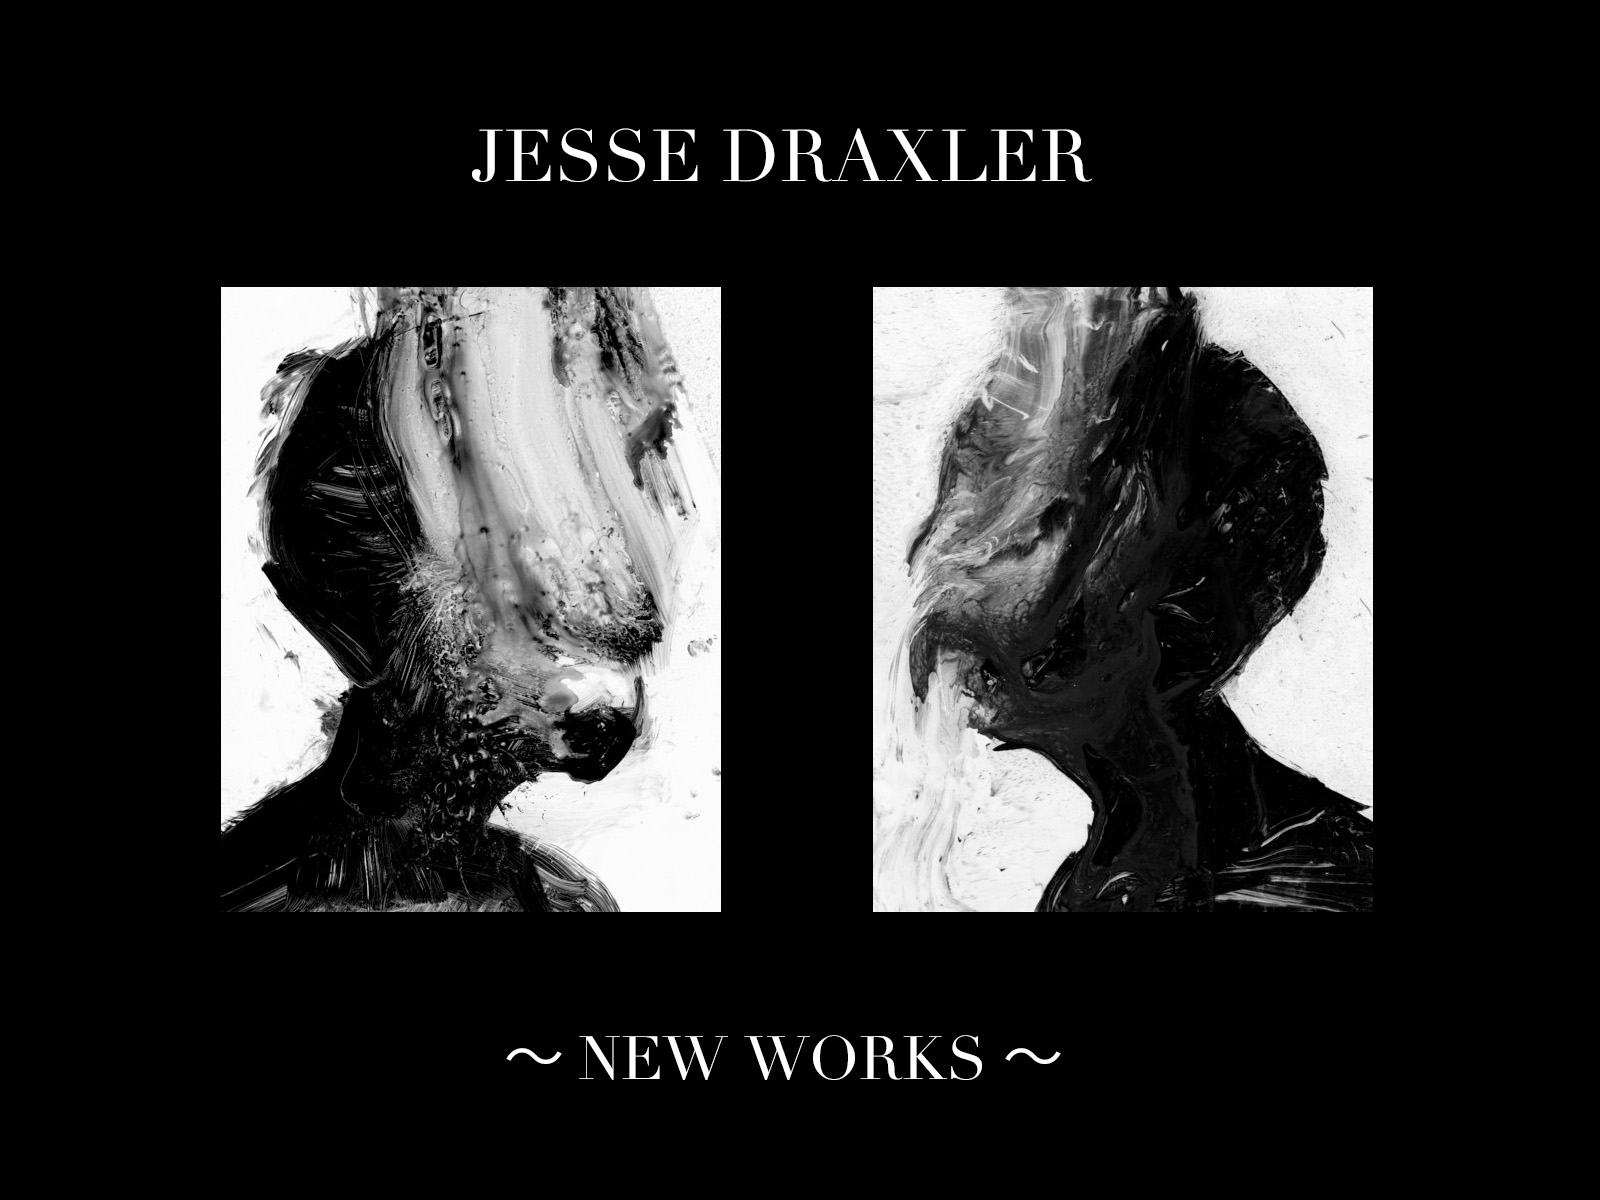 JESSE DRAXLER – NEW WORK ITEM